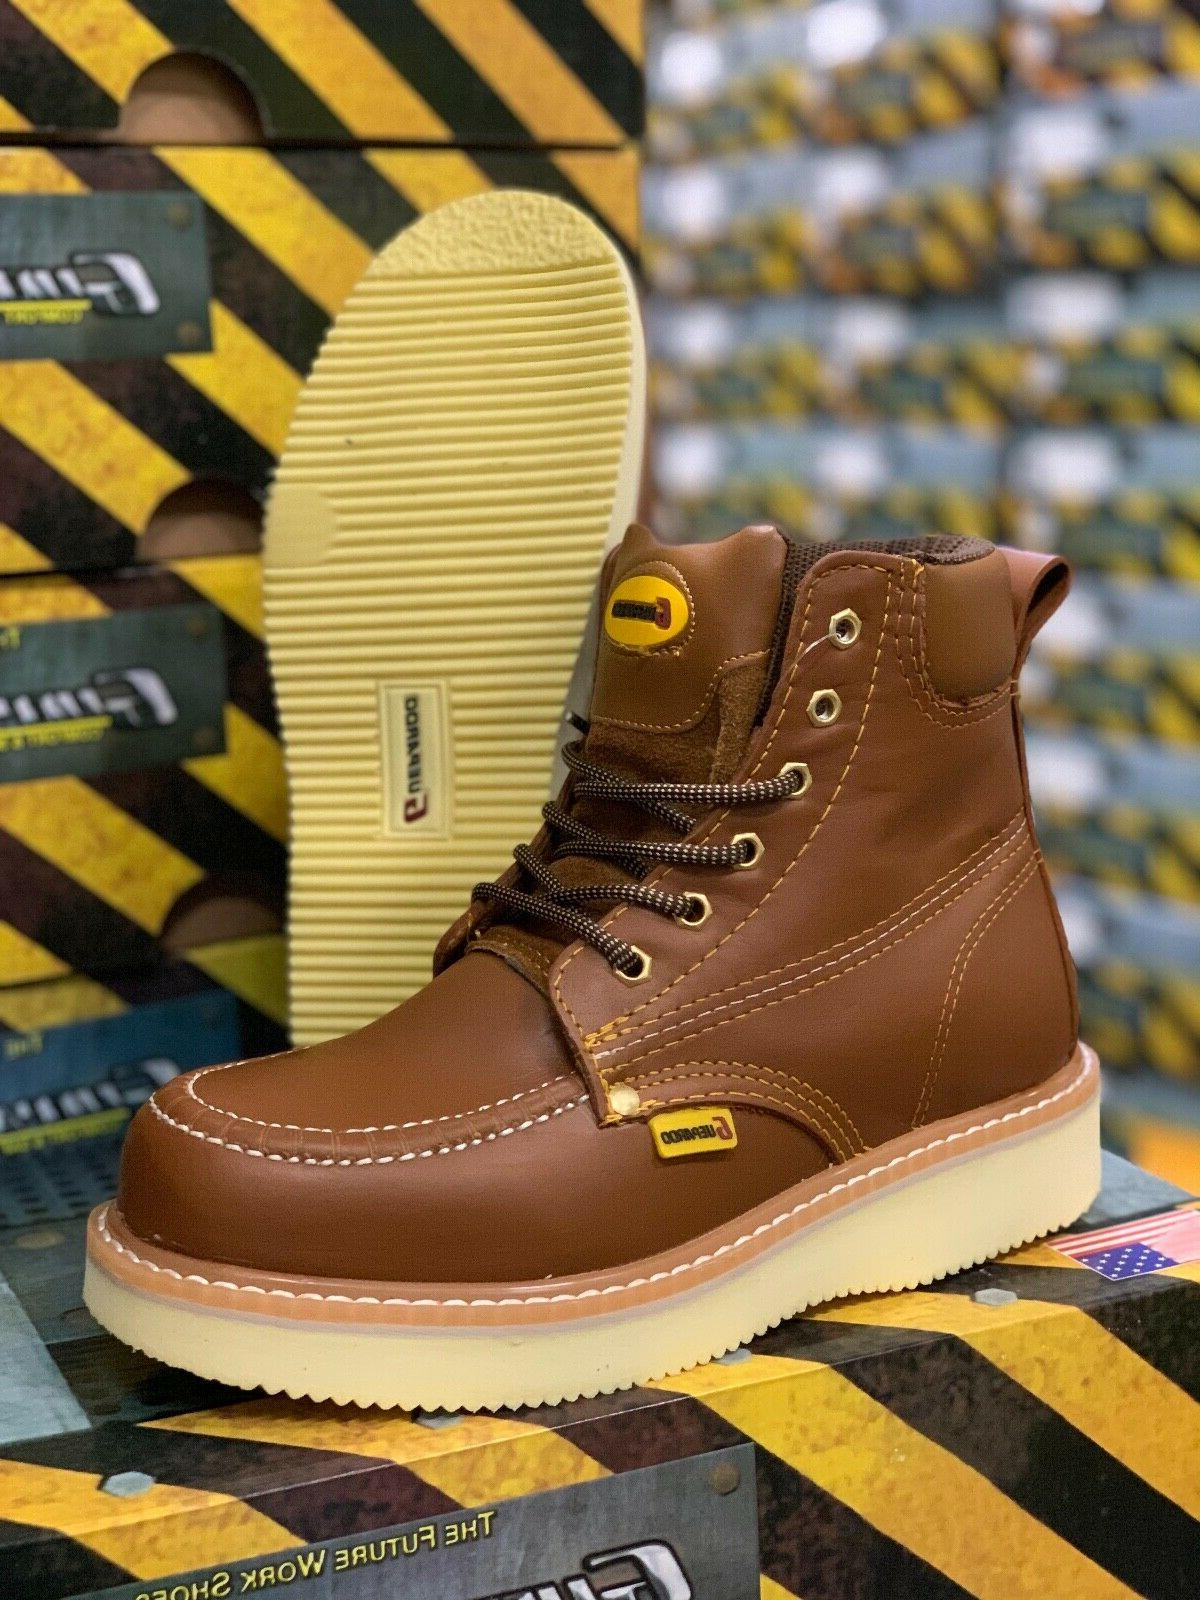 Men's Soft Moc Toe Resistant Leather Work Boots#61